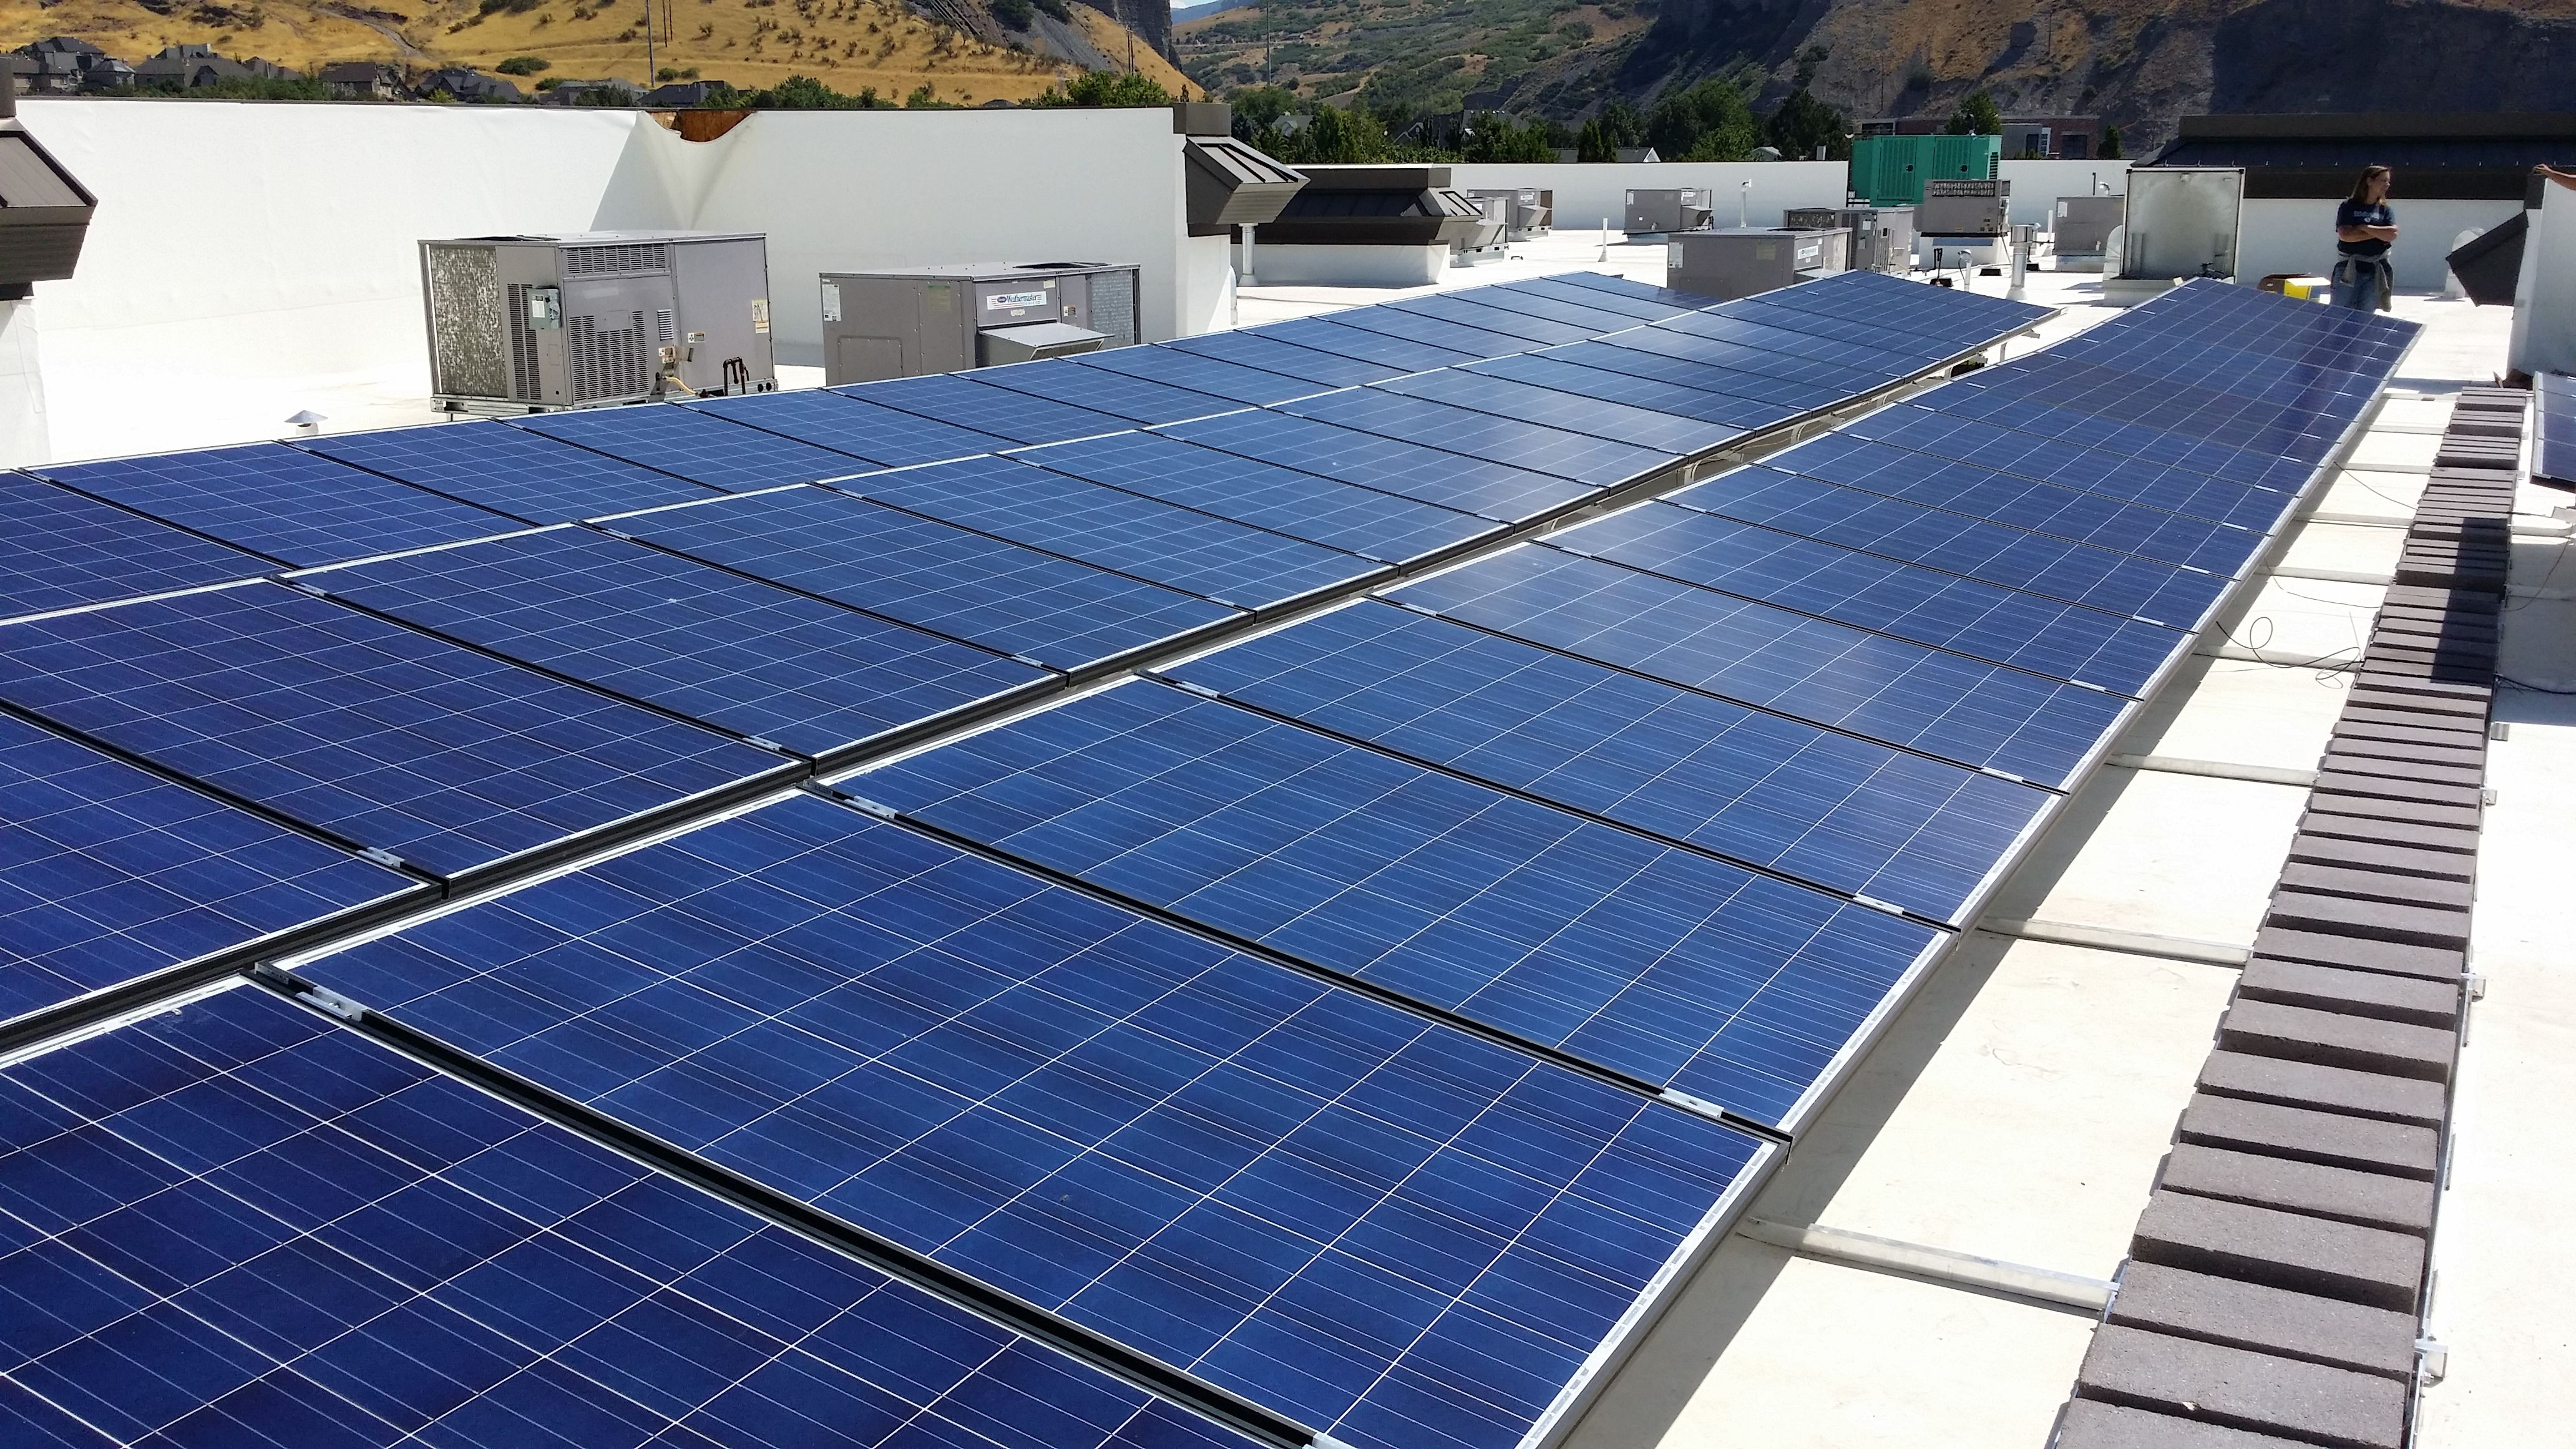 Tra Snow And Sun S Solar Ballast System Installed On A Flat Roof In Orem Ut Landscaping Retaining Walls Roof Solar Panel Solar Panels